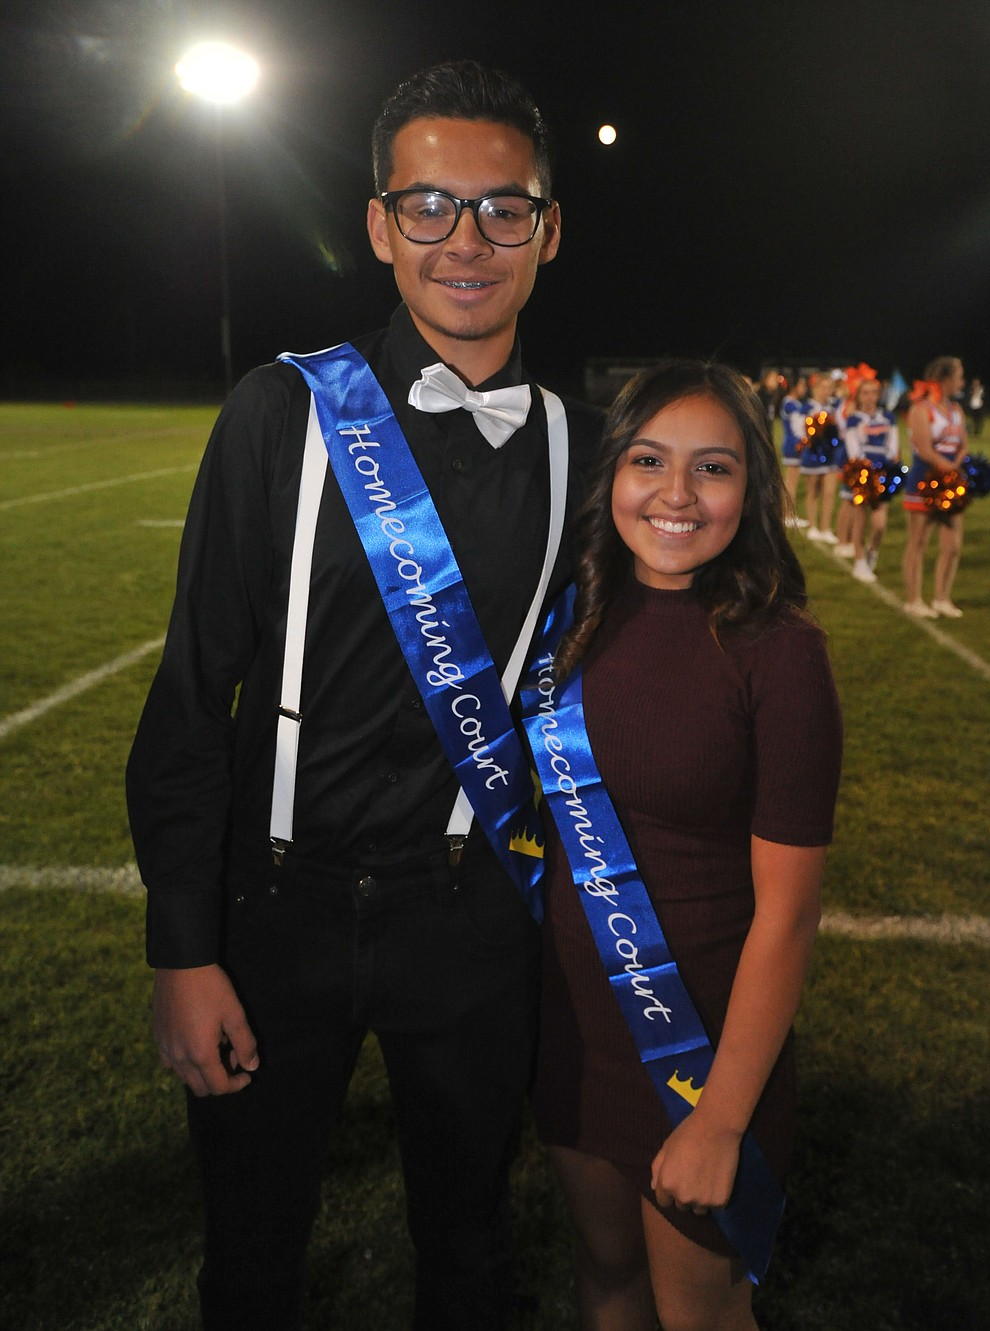 Chino Valley High School freshman homecoming royalty Oscar Gomez and Nayale Pina were crowned during halftime of the football game against Kingman Friday, October 6. (Les Stukenberg/Courier)